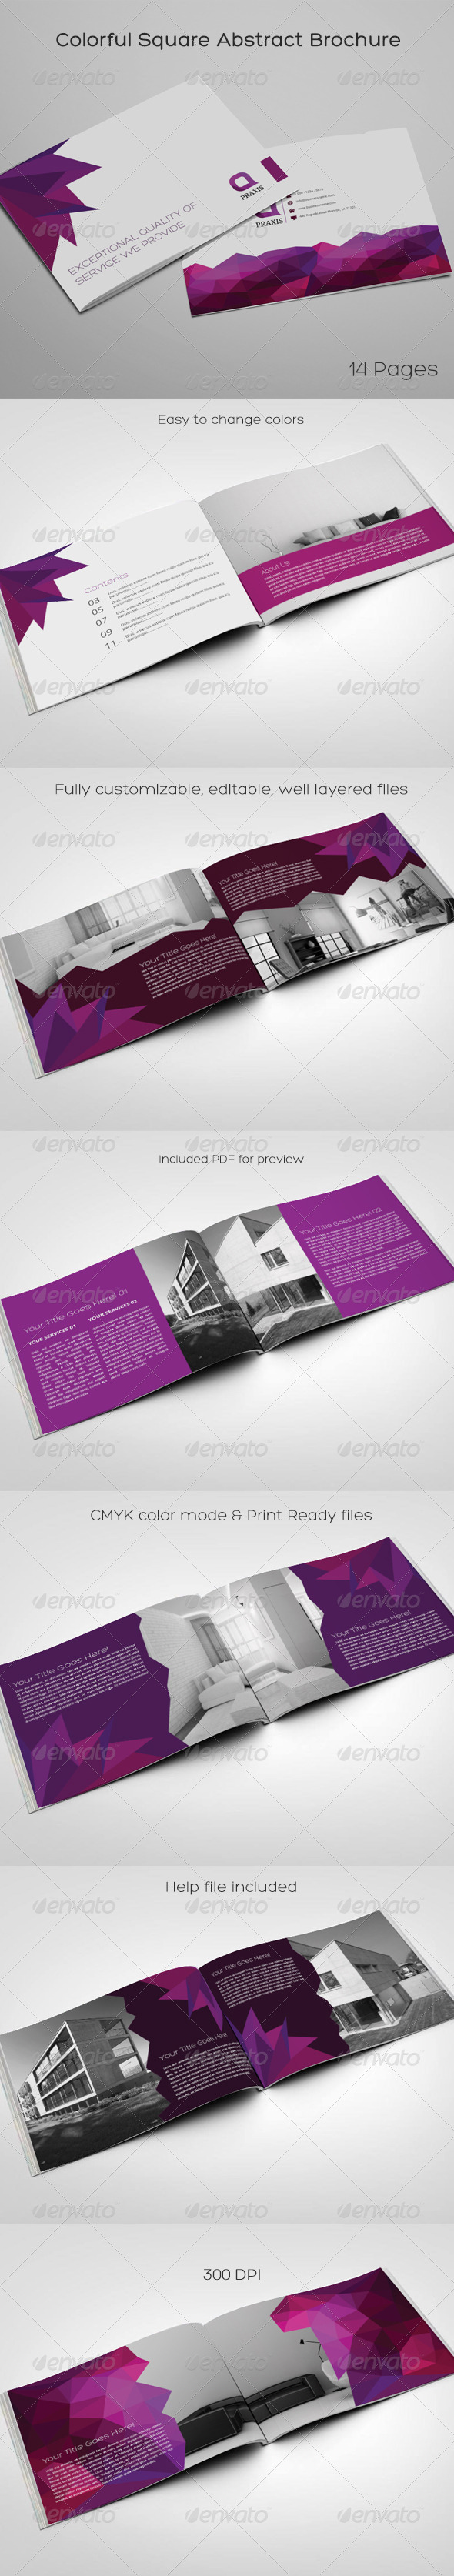 GraphicRiver Colorful Square Abstract Brochure 8594835